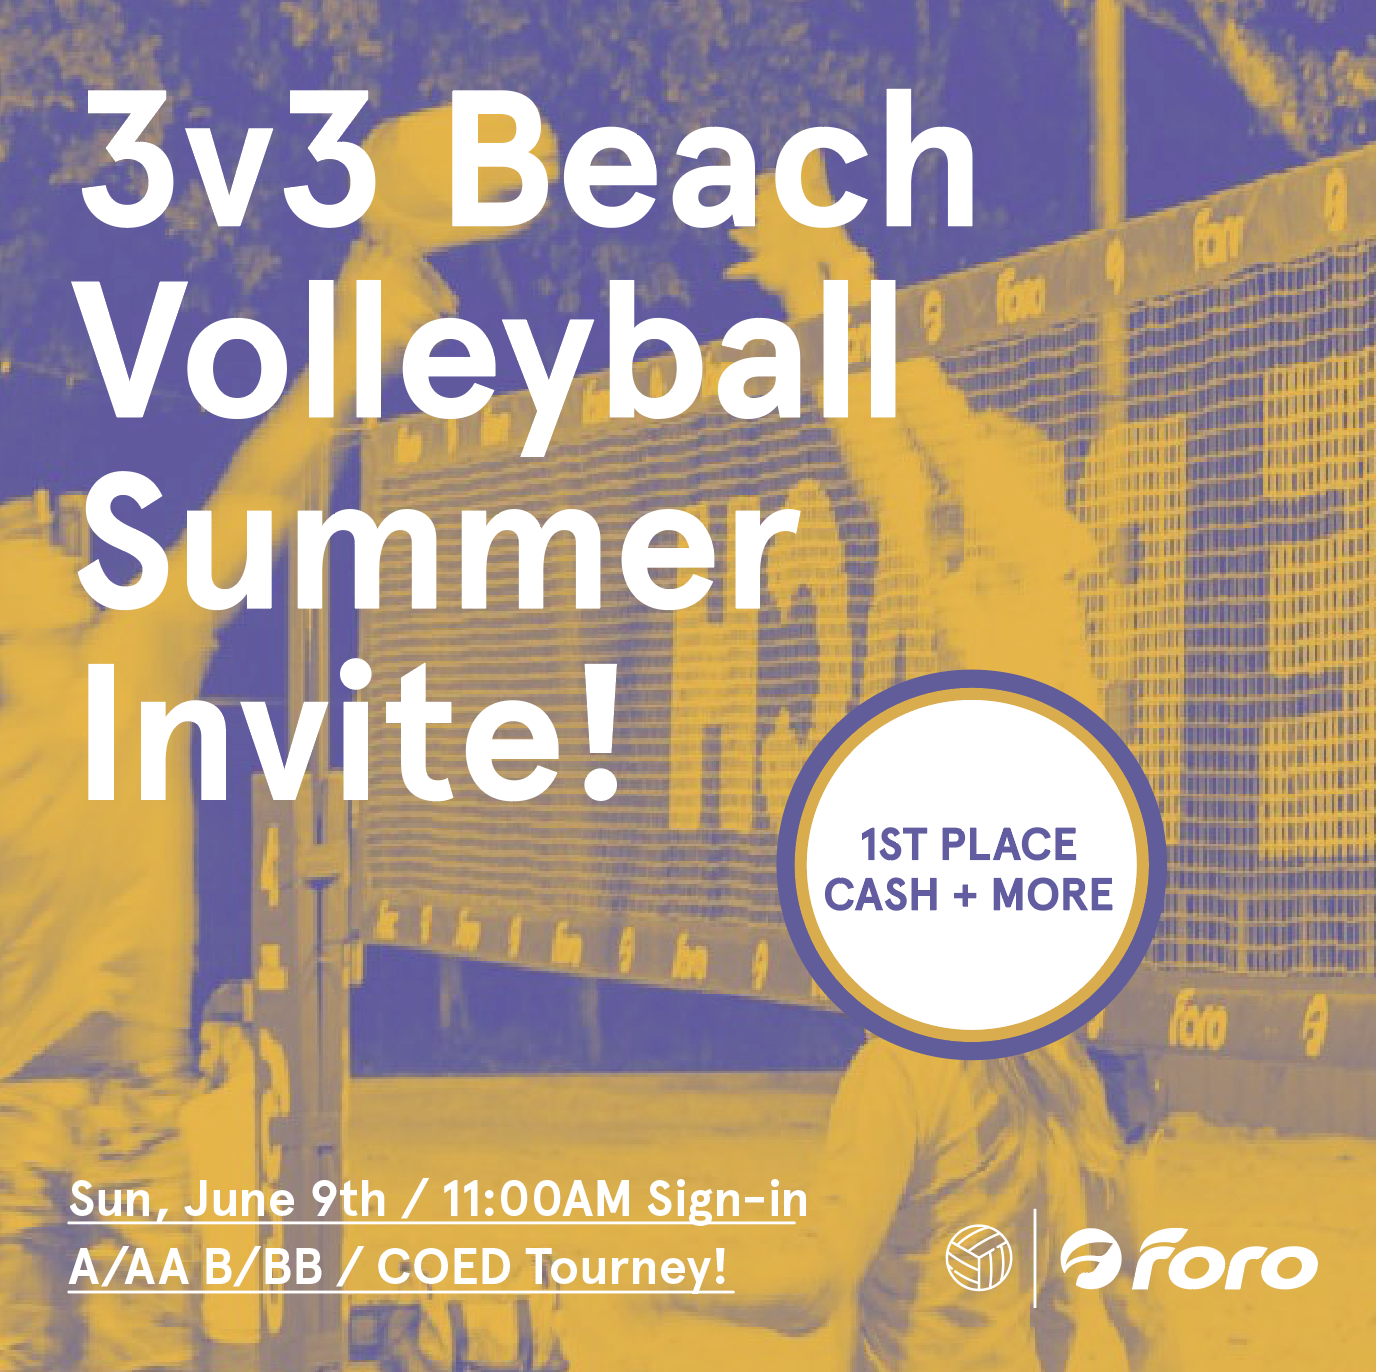 Foro 3v3 Beach Volleyball Summer Invite - Foro will hosting its first official beach volleyball tournament on June 9THSign in will be at 11:00 AM and the games will start at 11:30 until about 4:00PM.It will be $15 a player! This is a coed tournament!FIRST PLACE WINS 100% of REGISTRATION FEES + 50% off team registration for our upcoming Summer Beach VBALL league!Free water provided + BYOB (one container fee)There are two divisions: B/BB and A/AANo sandbaggingDIVISION A/AA: https://bit.ly/30p8k0KDIVISION B/BB: https://bit.ly/2VxGCelThere is a limited number of spots available. Please message me, Garrett Matthew, to sign up!Contact: https://www.facebook.com/garrett.matthewvirginYou can also message info@forosportsclub.com to sign up!